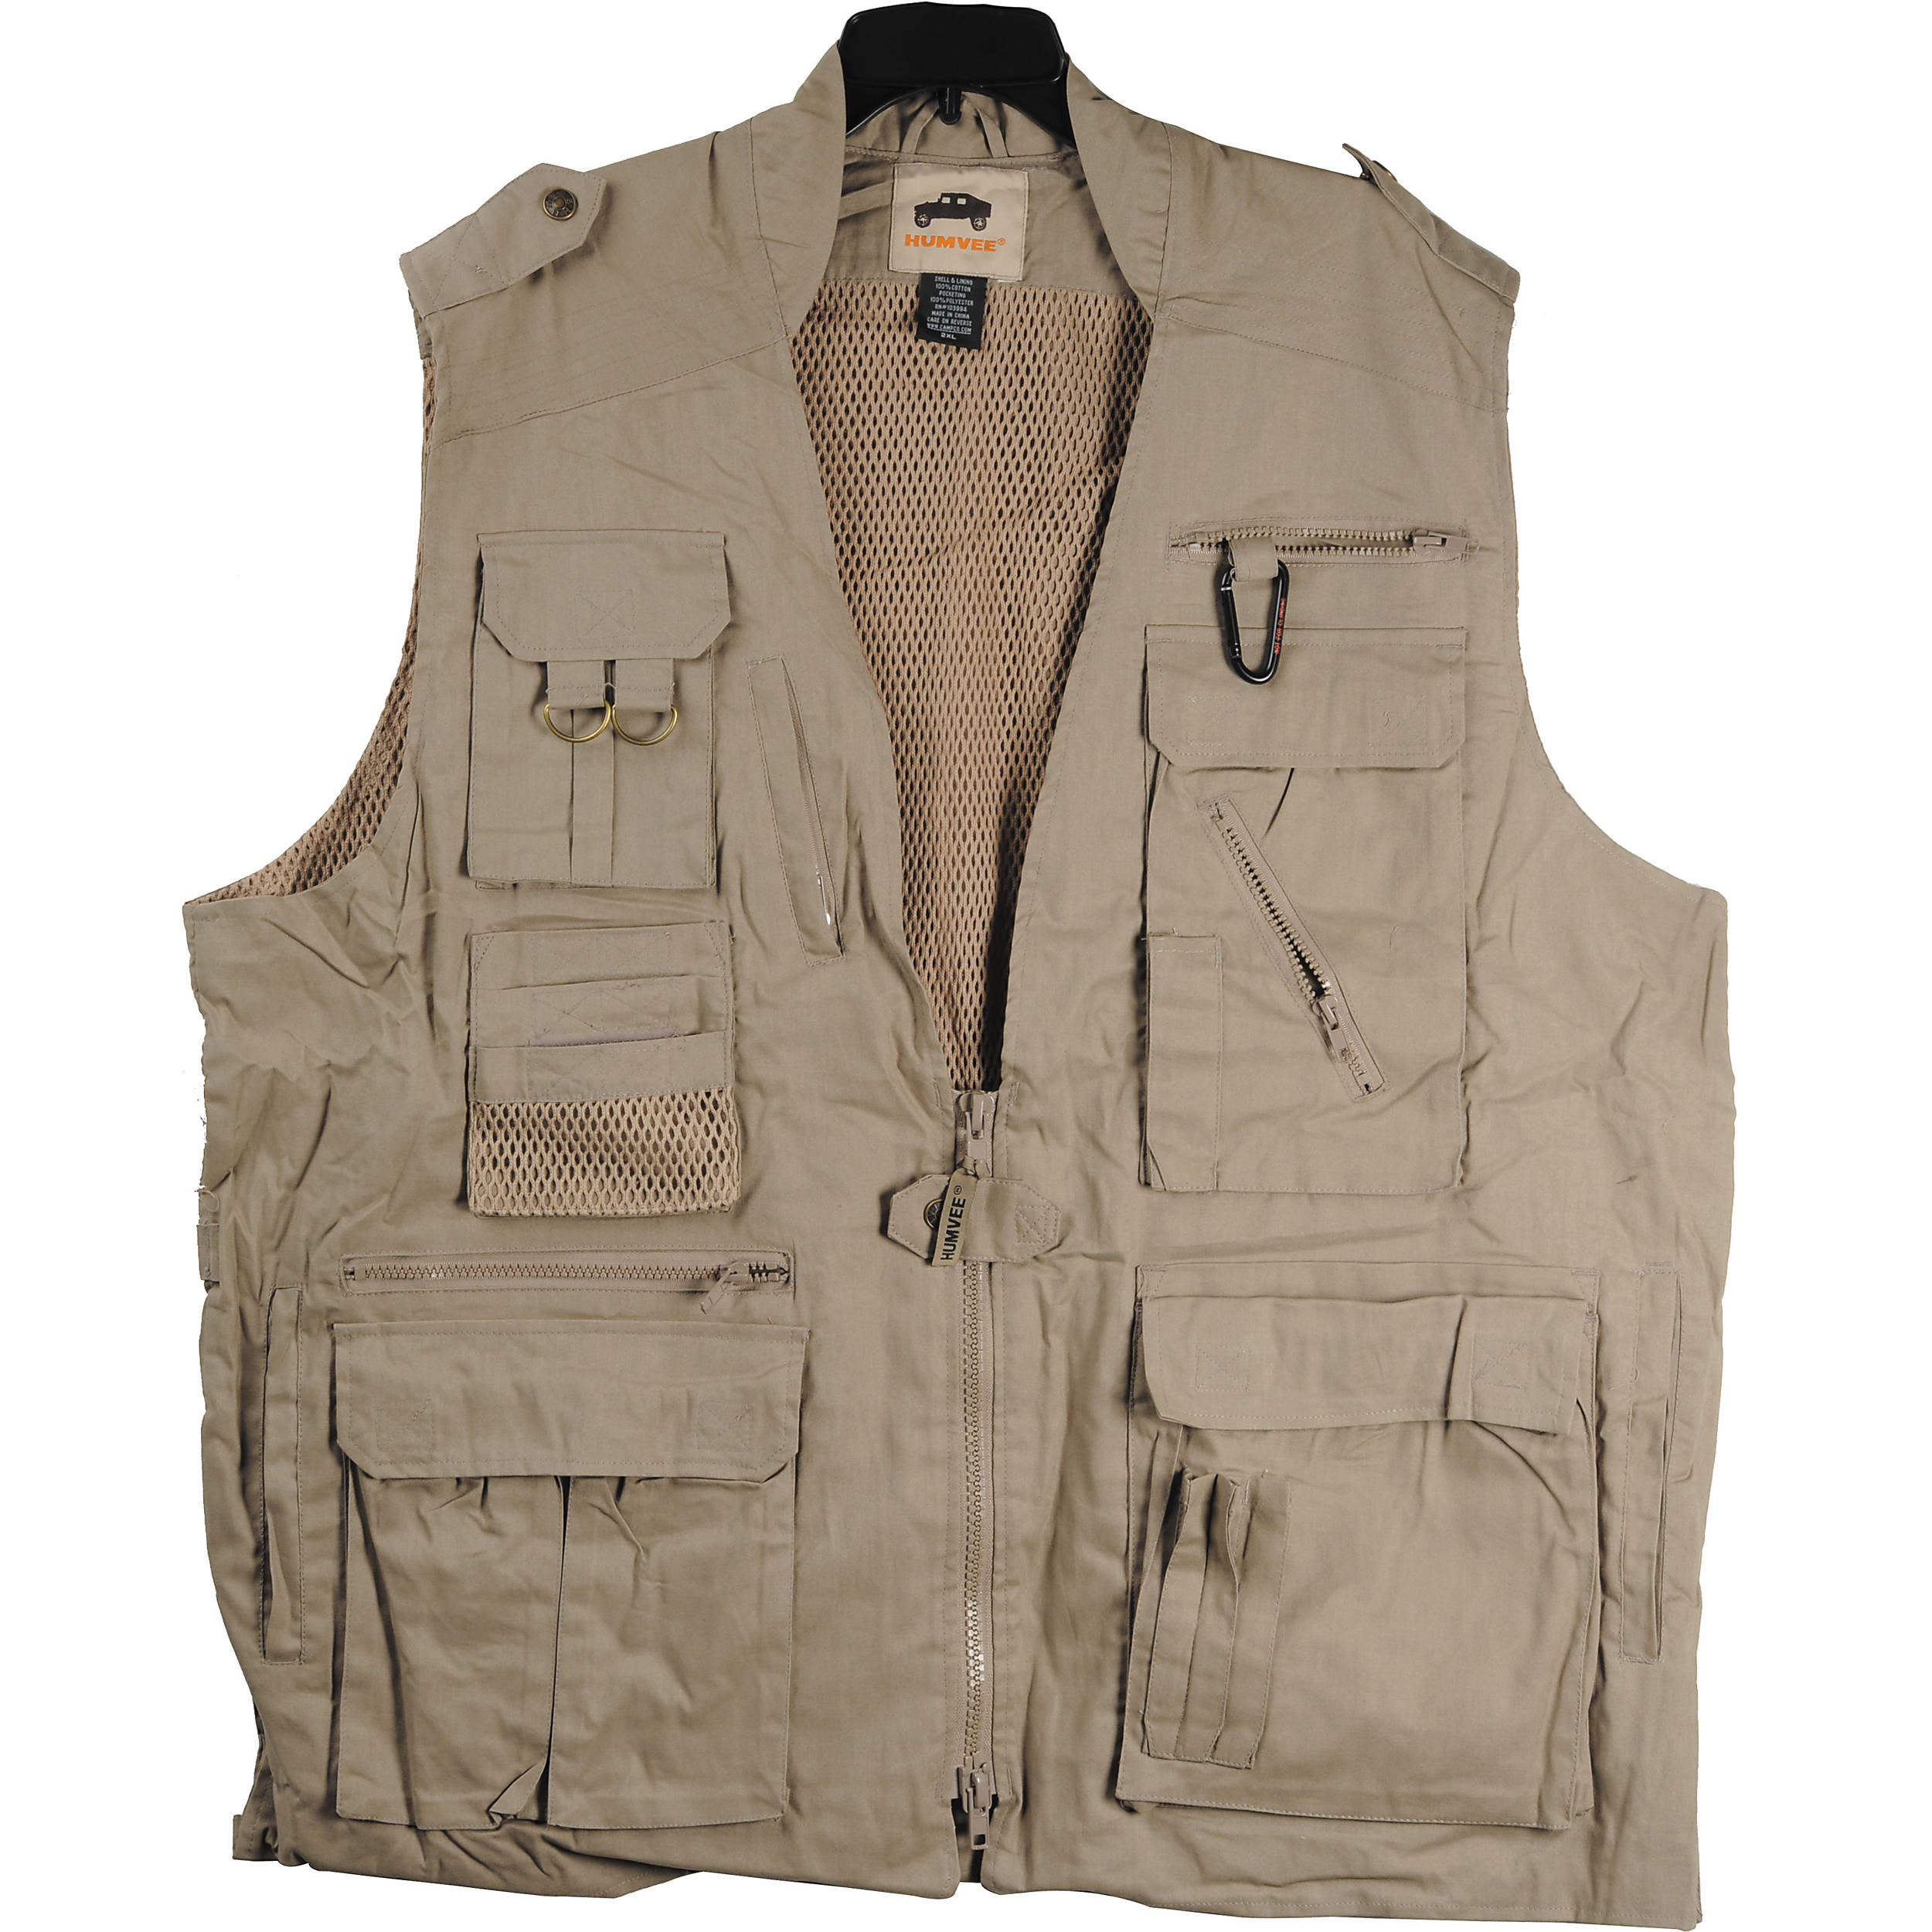 Humvee By Campco Safari Photo Vest Large Khaki Hmv Vs K